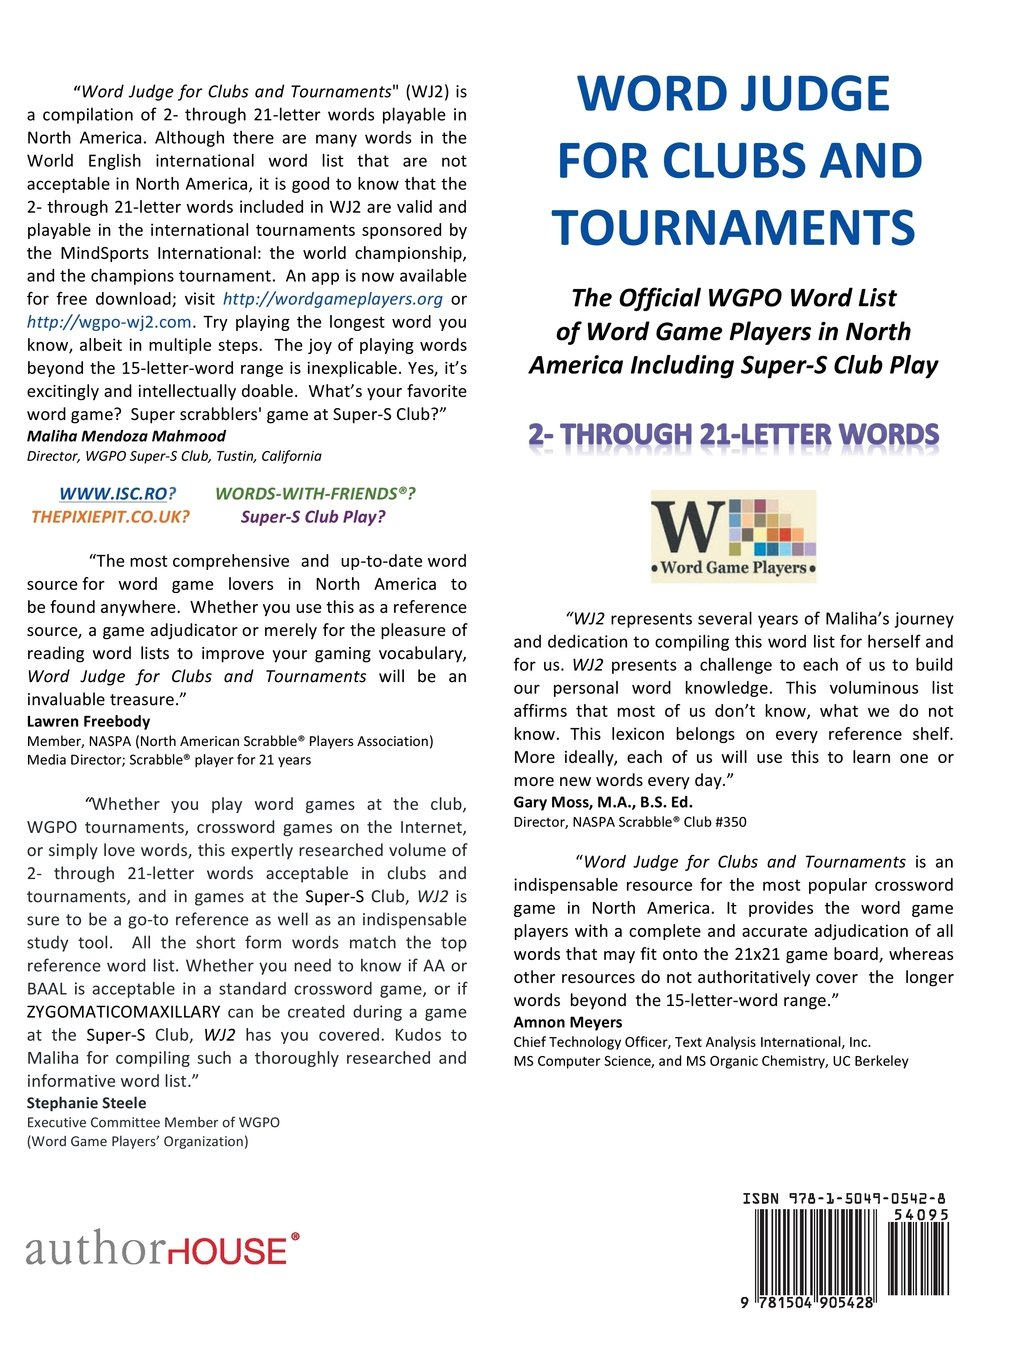 Amazon Word Judge for Clubs and Tournaments The ficial